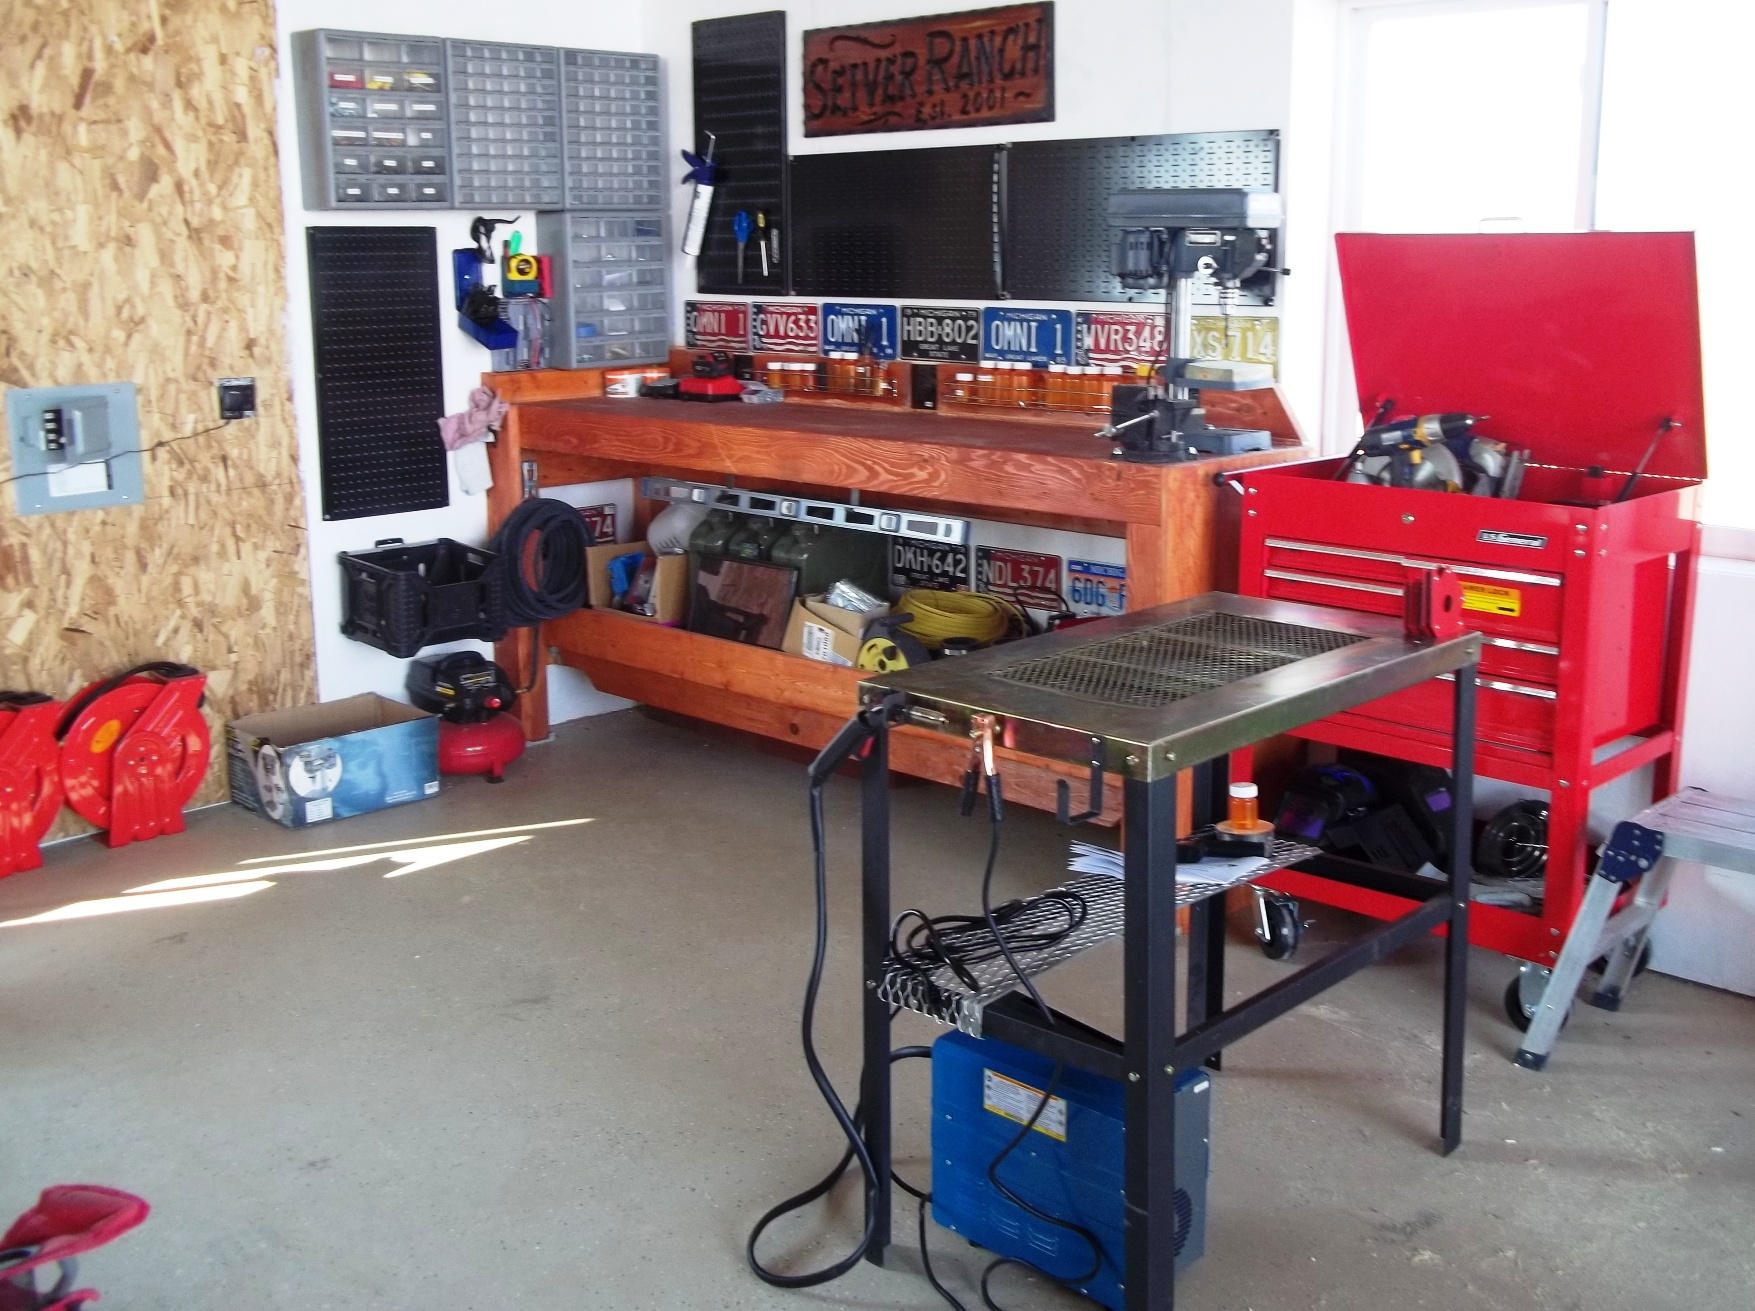 2012-09-27 - New Shop Bench and Tools.JPG